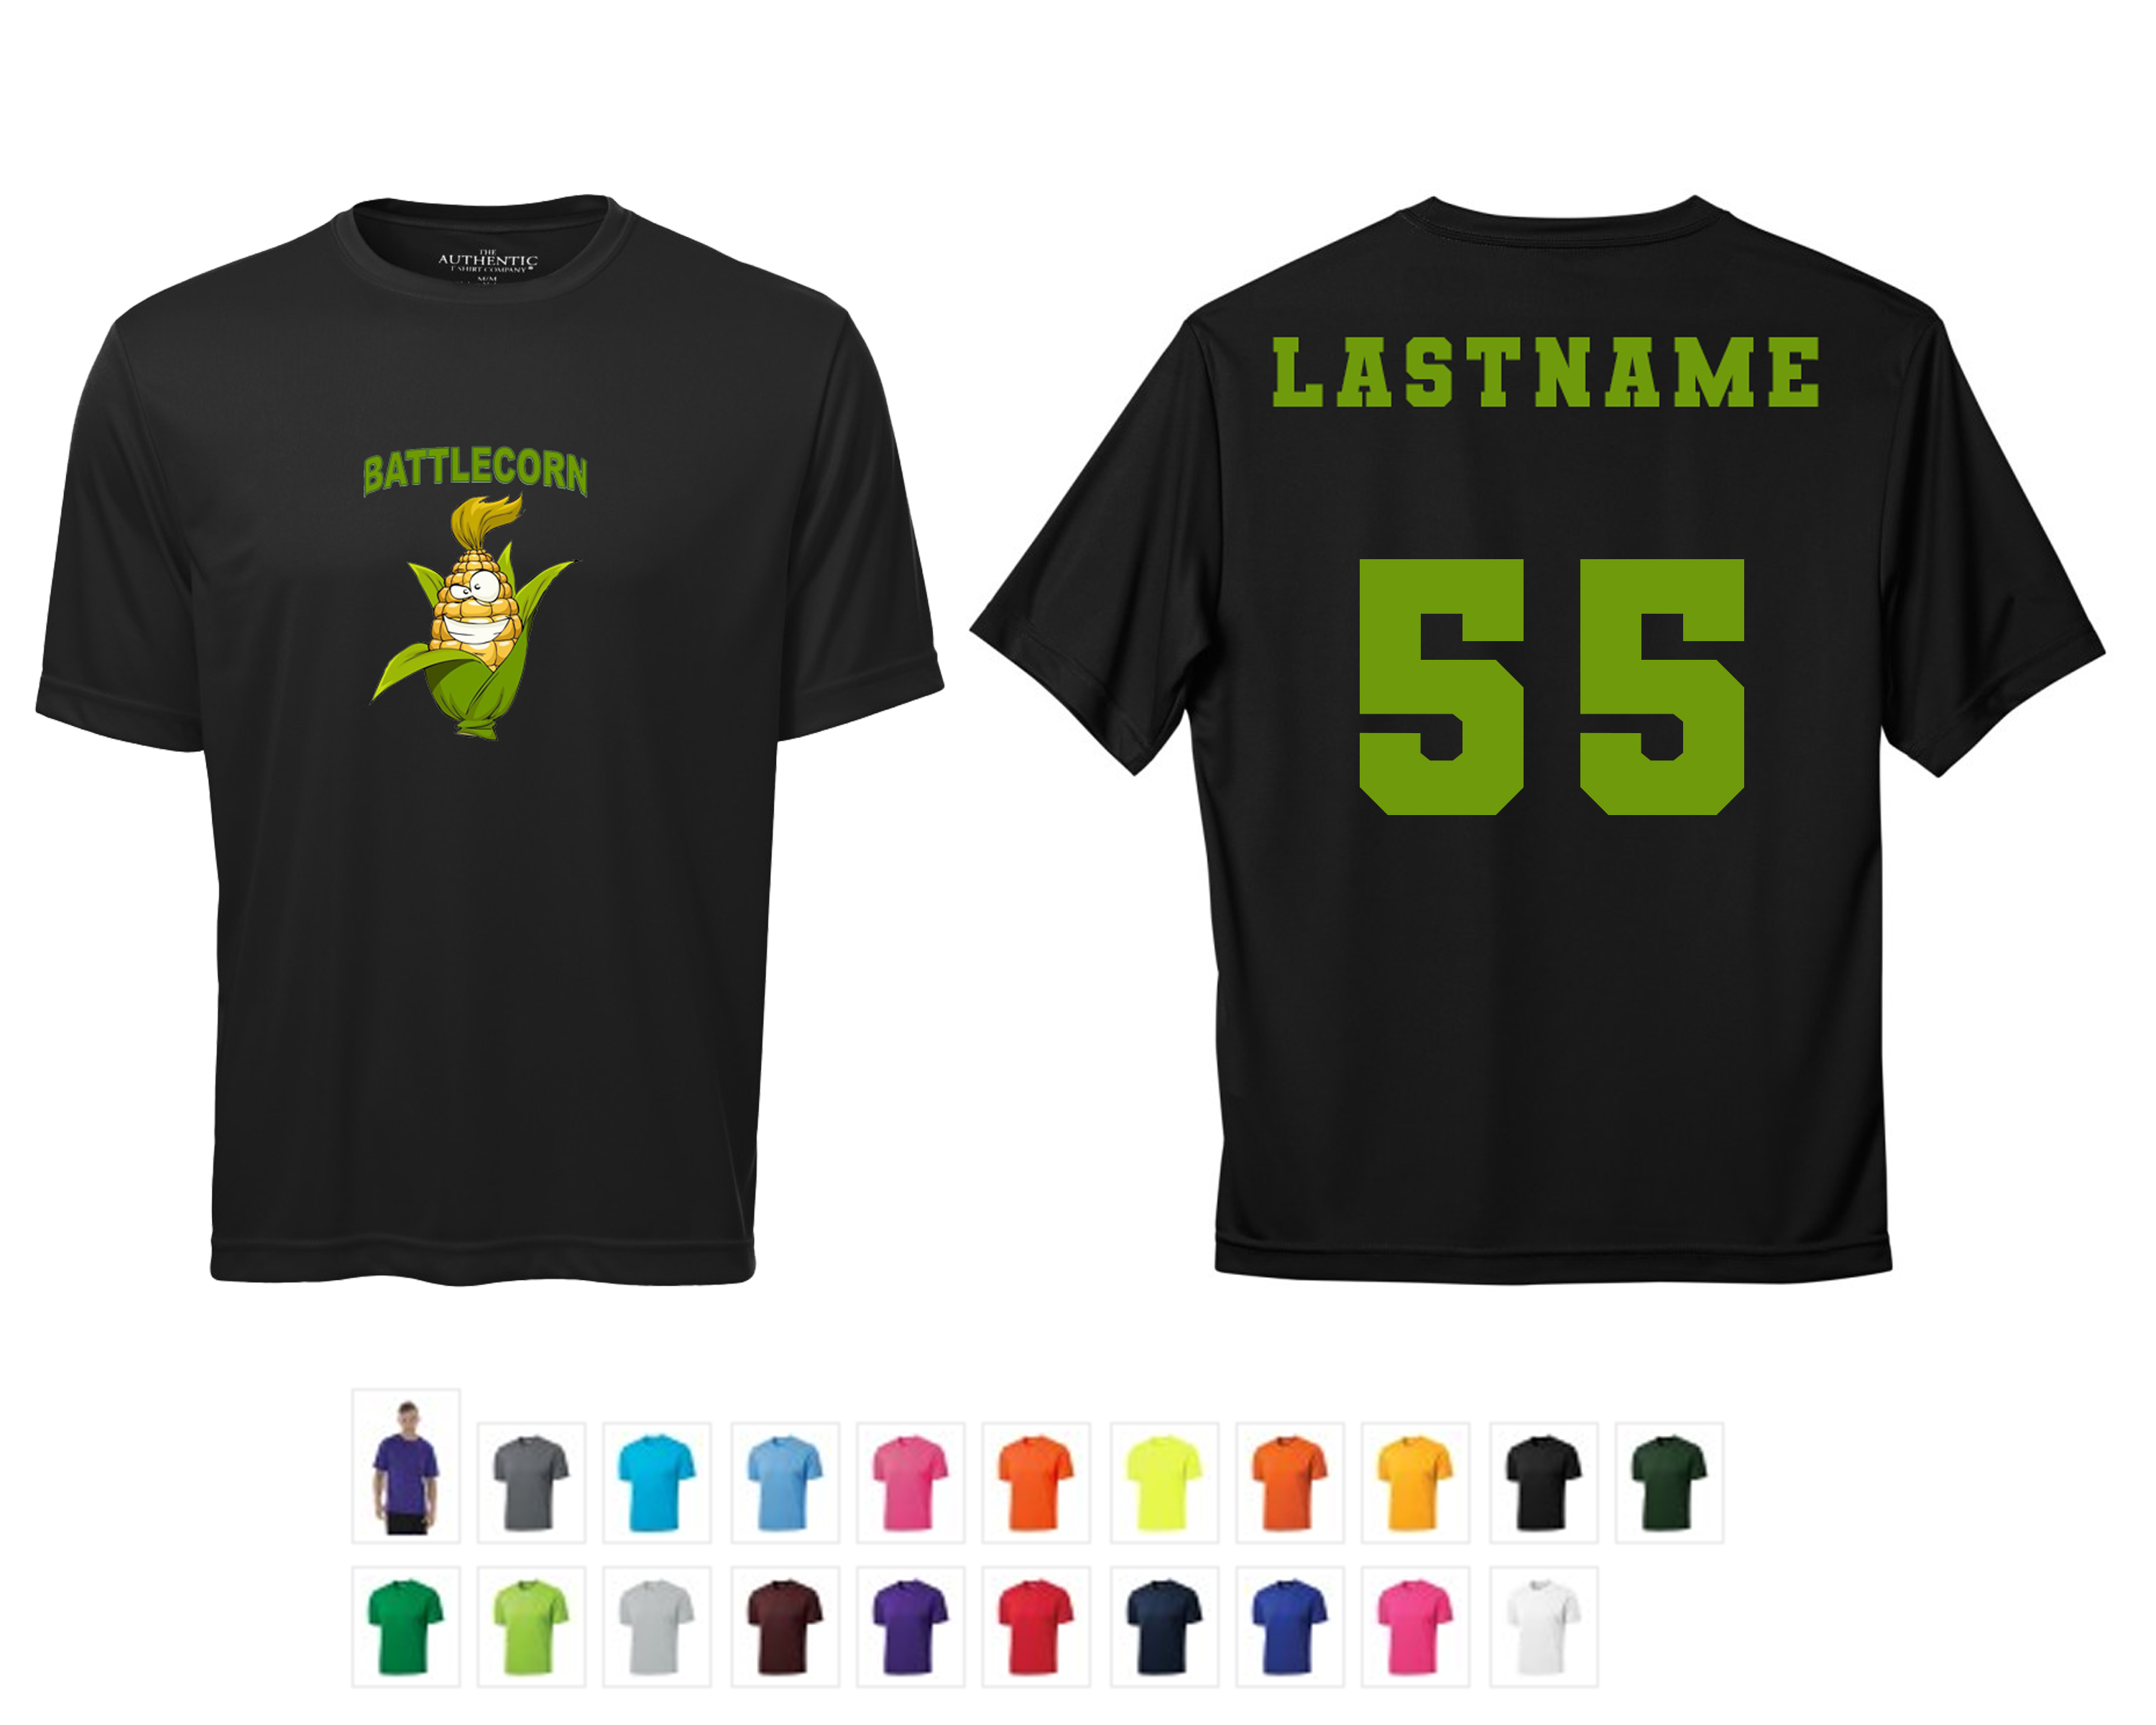 Team T-shirt (Dry fit style) with Last Name & Number